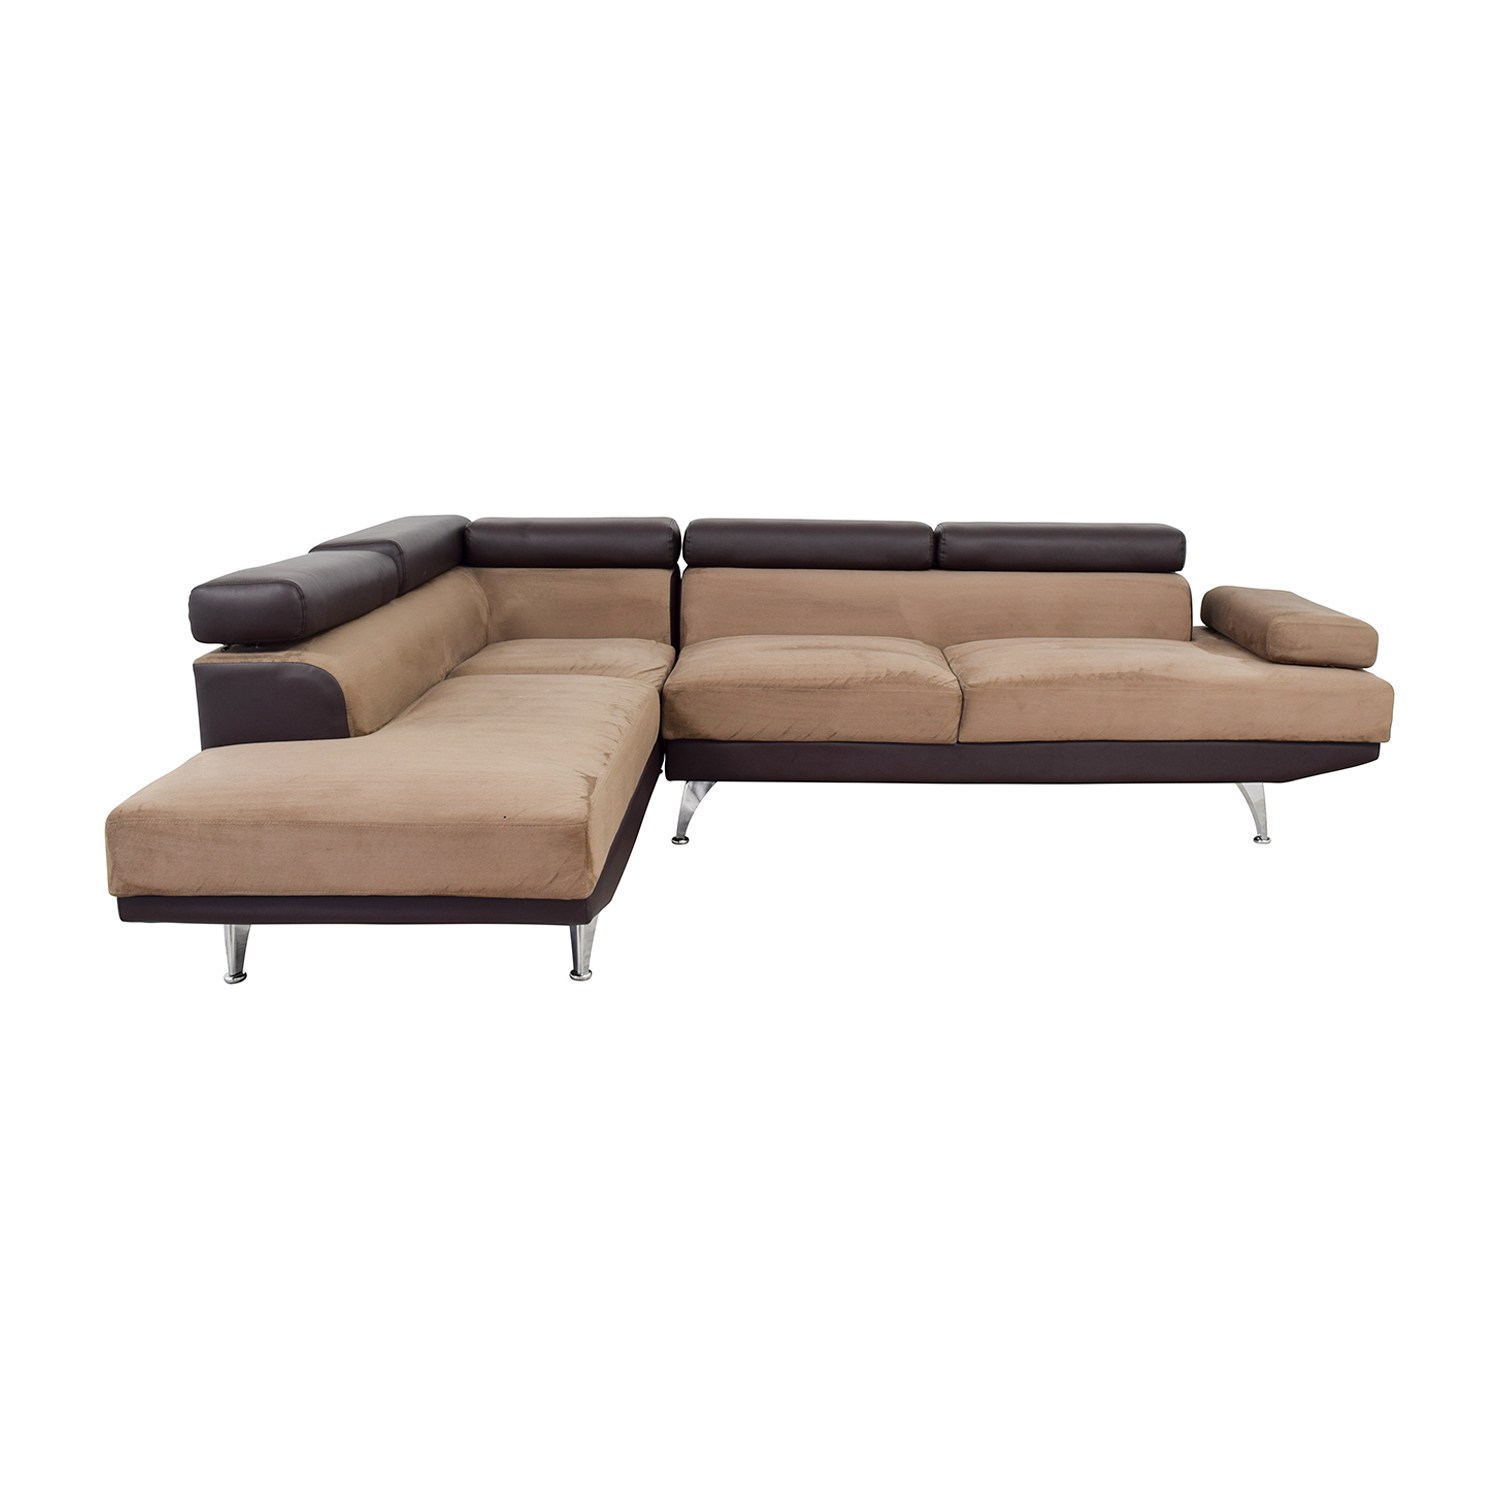 Tremendous 65 Off Wayfair Wayfair Berardi Brown Leather And Tan Fabric L Shaped Sectional Sofas Gmtry Best Dining Table And Chair Ideas Images Gmtryco